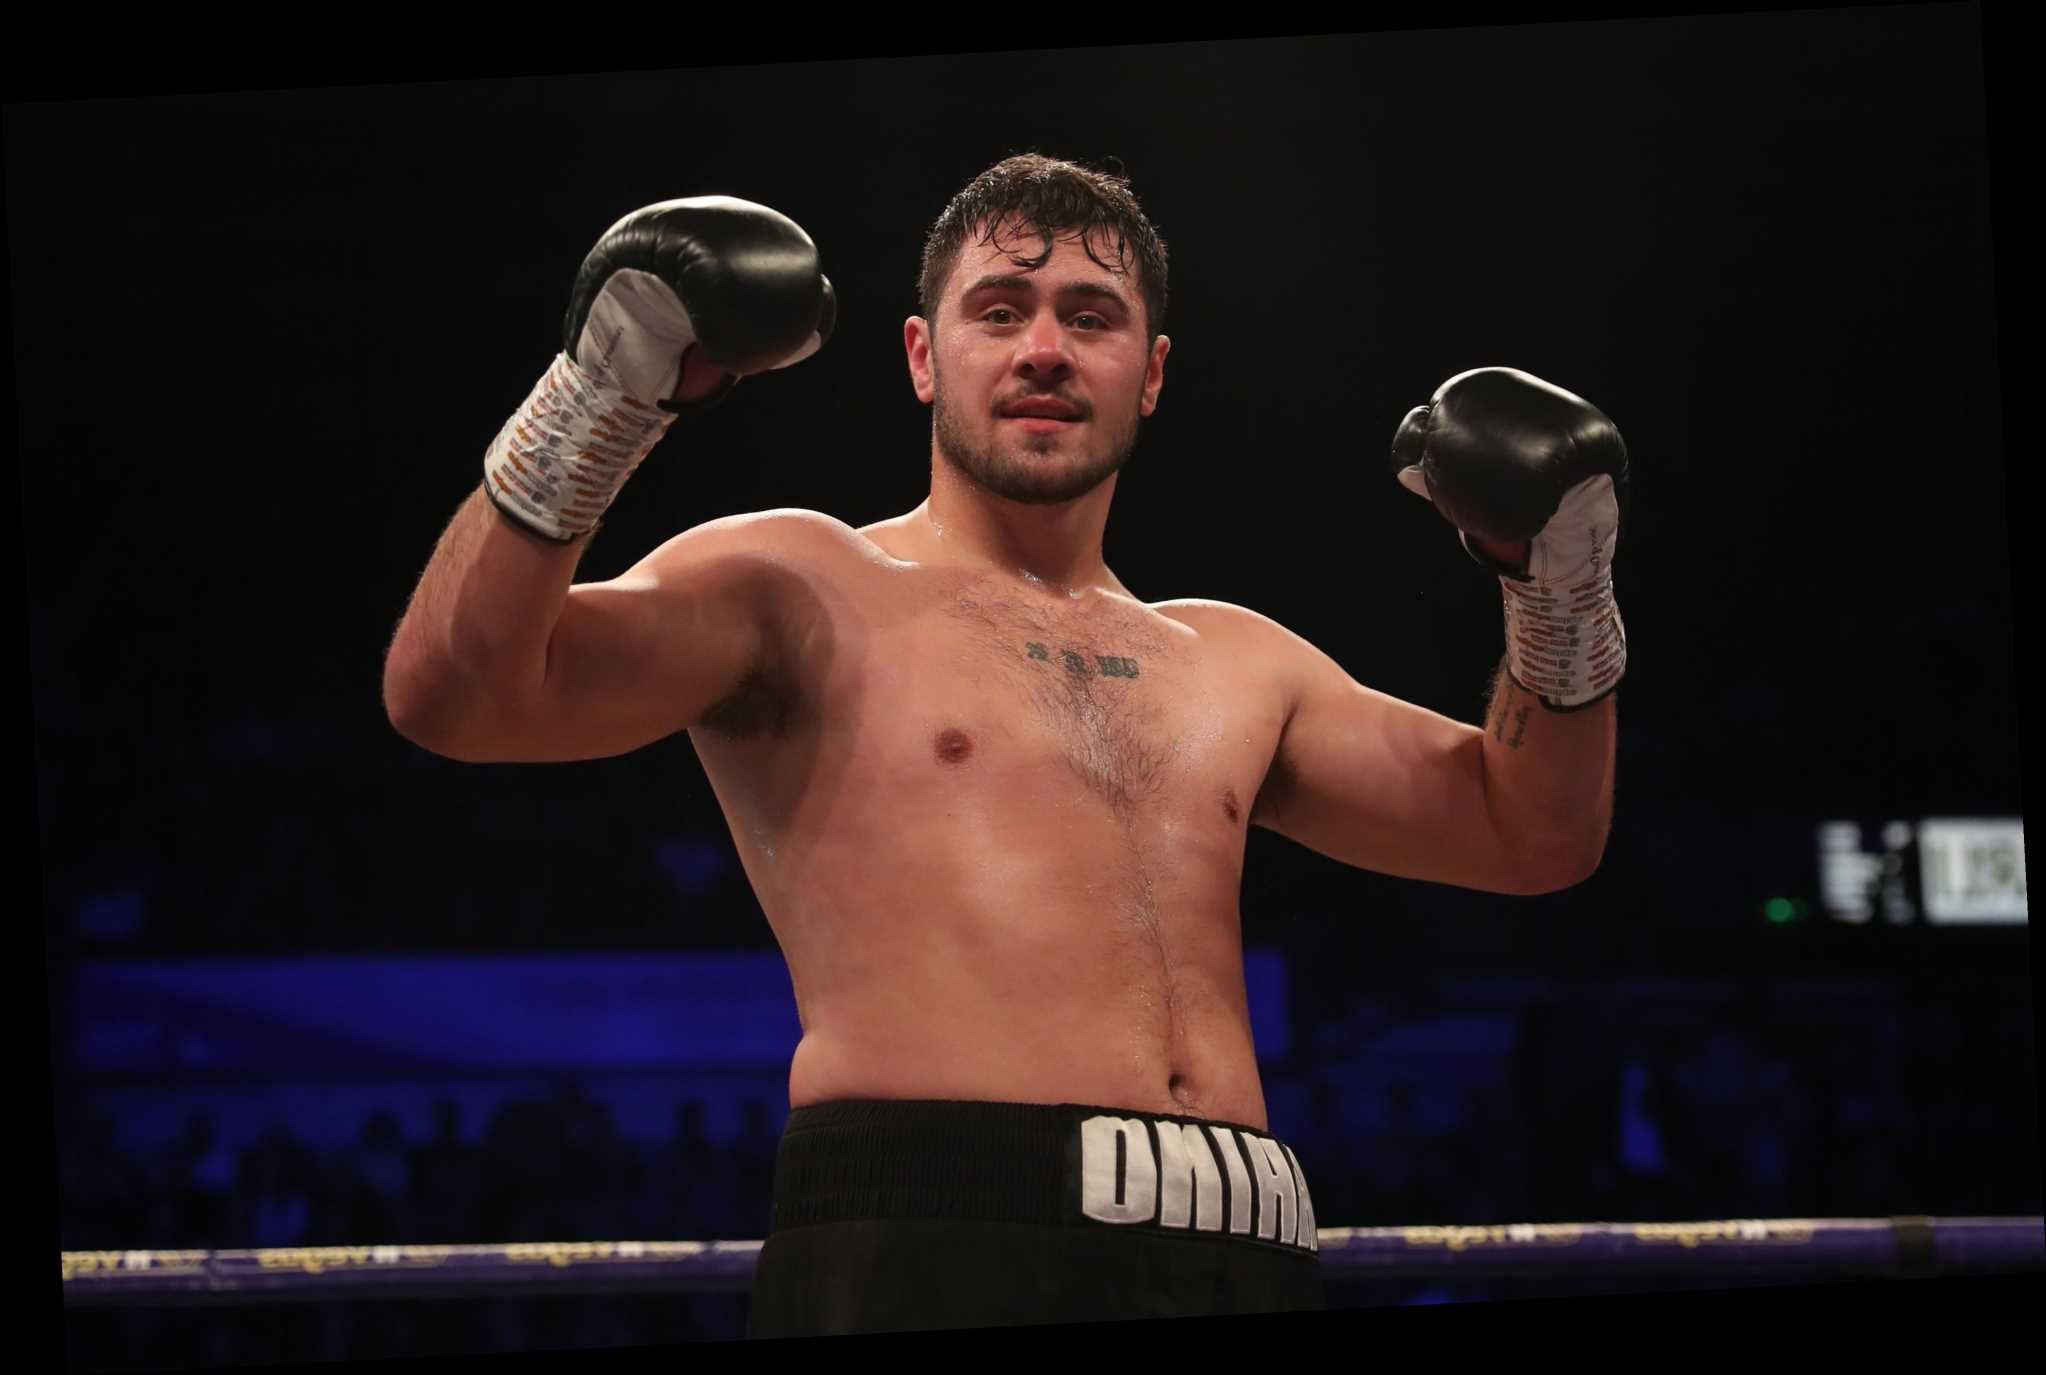 Dave Allen announces shock retirement from boxing aged 28 as he says he 'doesn't want to get punched anymore'